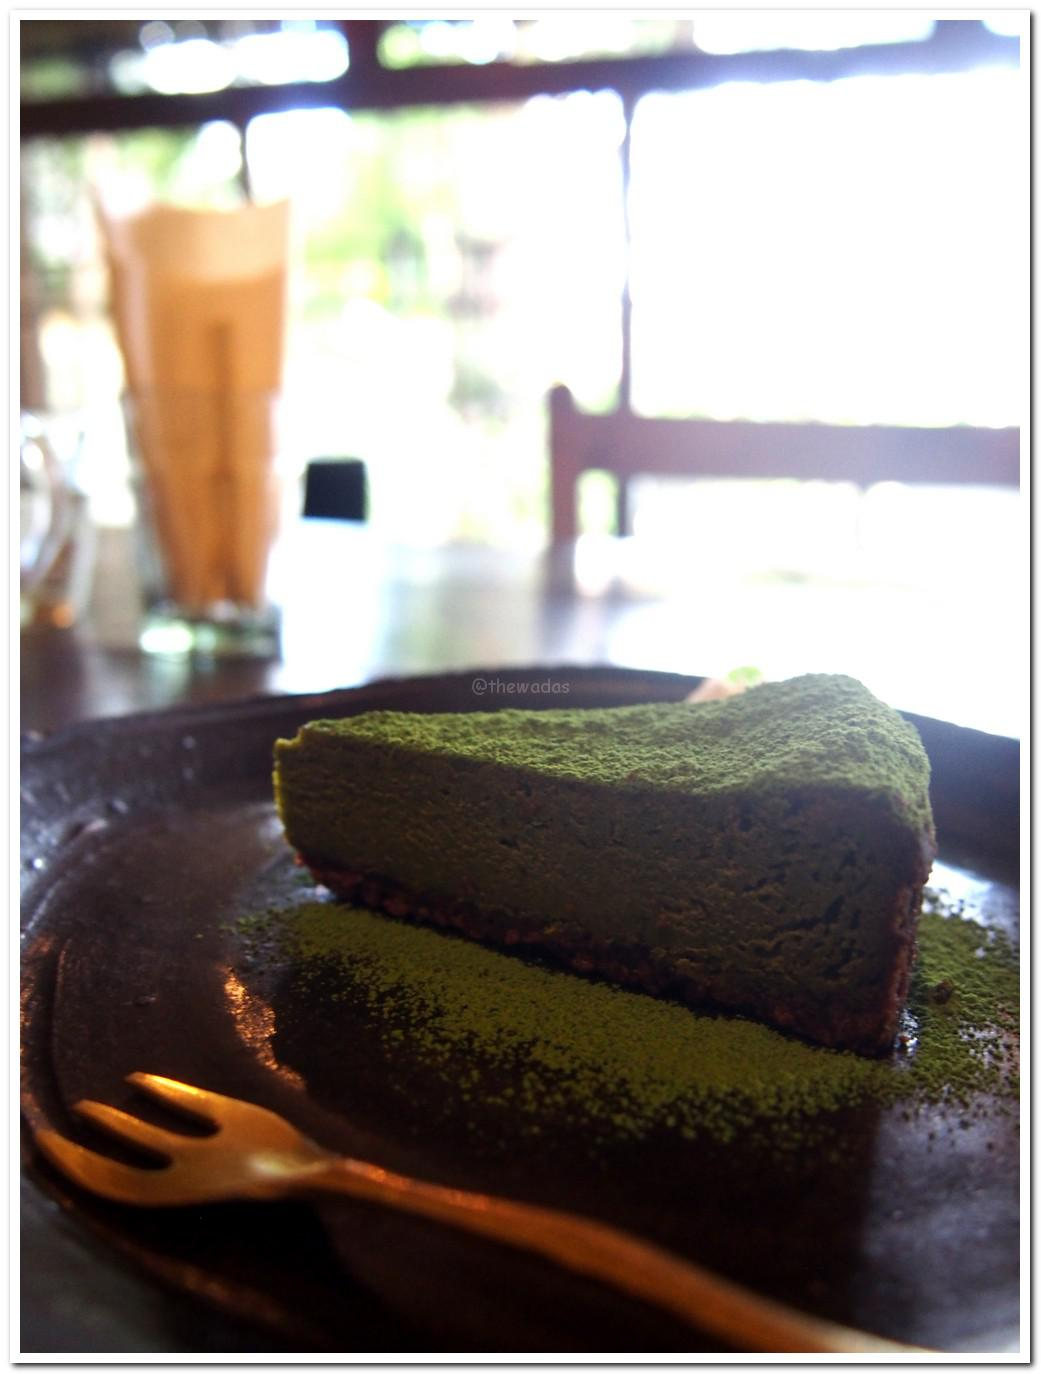 Kominka Cafe in Yame City: Ao Cafe